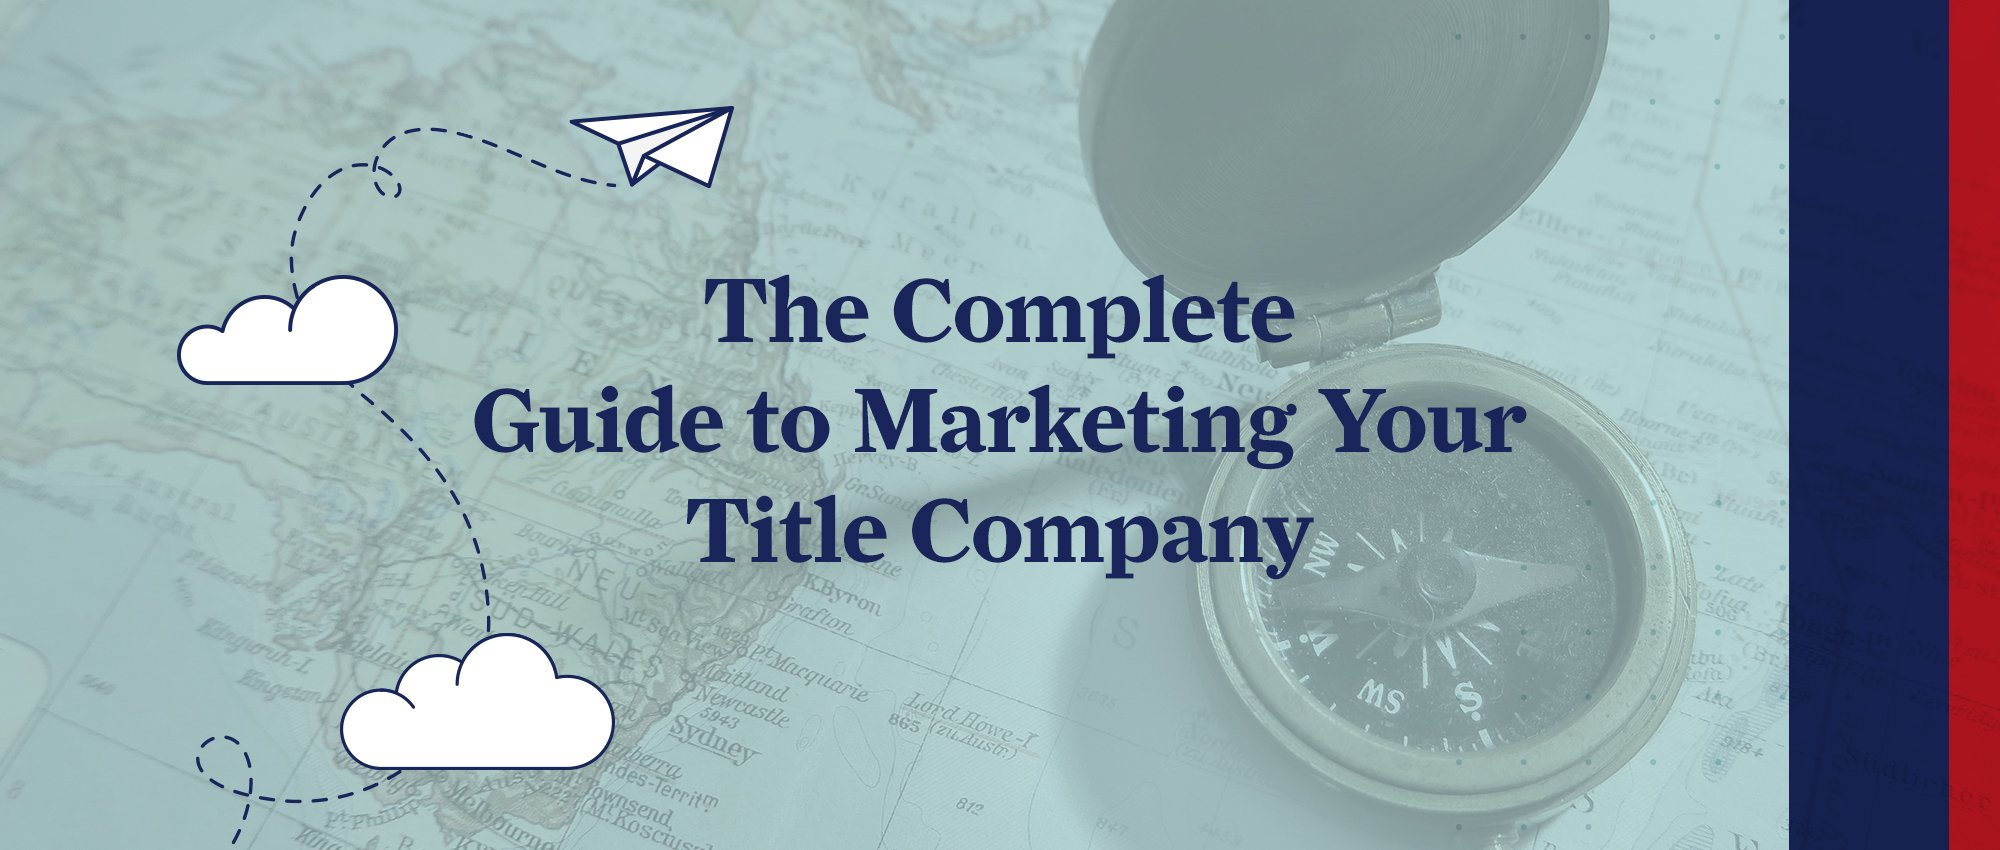 The Complete Guide to Marketing your Title Company - Graphic and Illustration of Clouds.